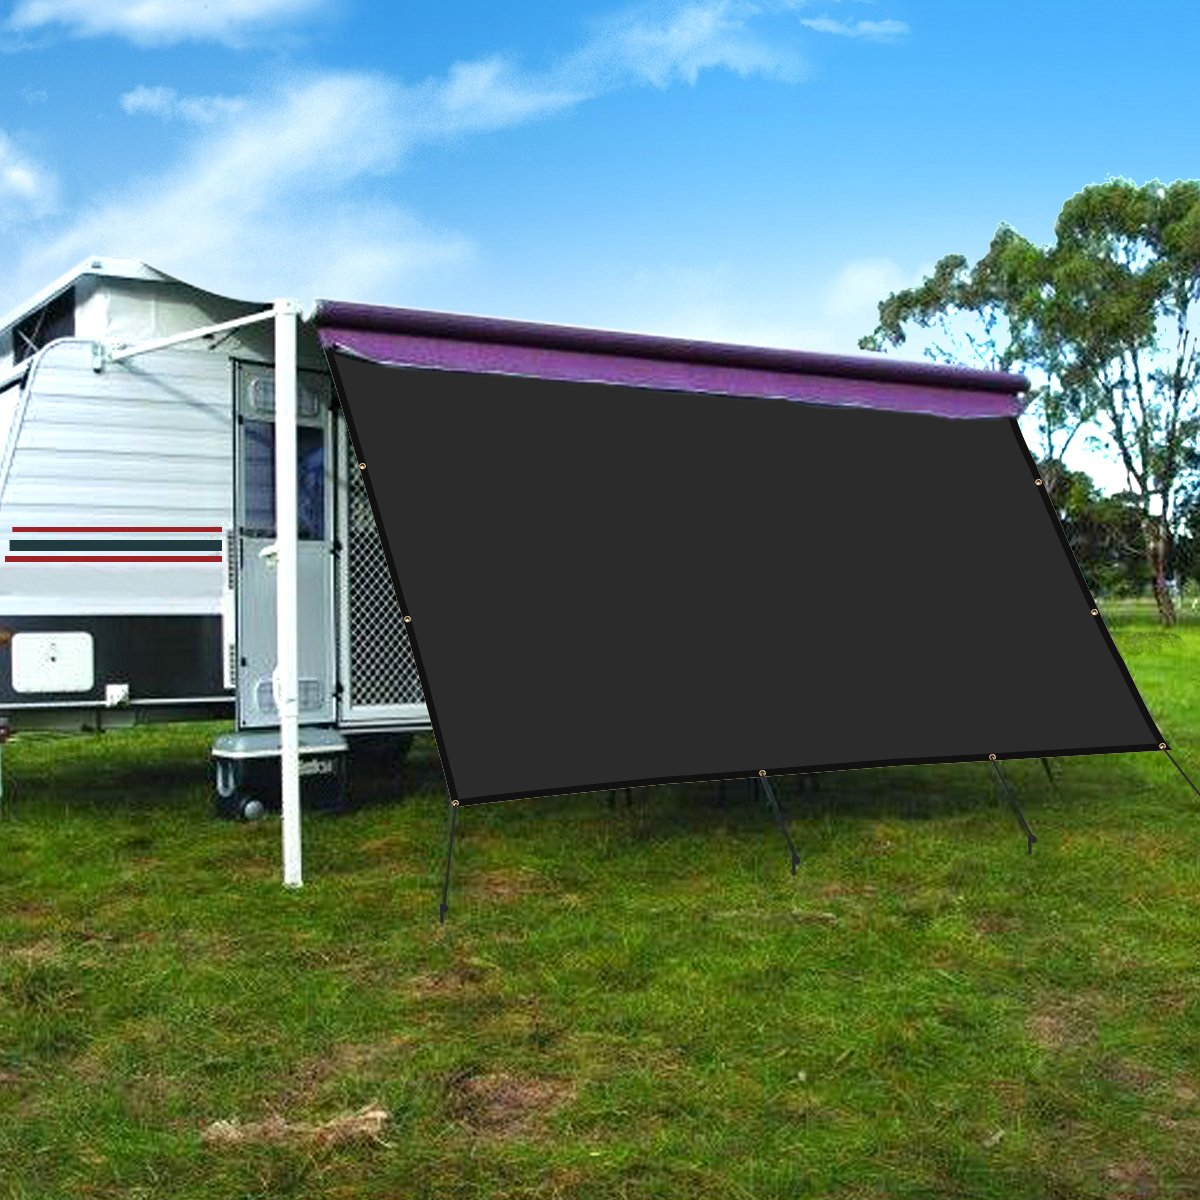 CAMWINGS RV Awning Privacy Screen Shade Panel Kit Sunblock Shade Drop 8 x 20ft, Black by CAMWINGS